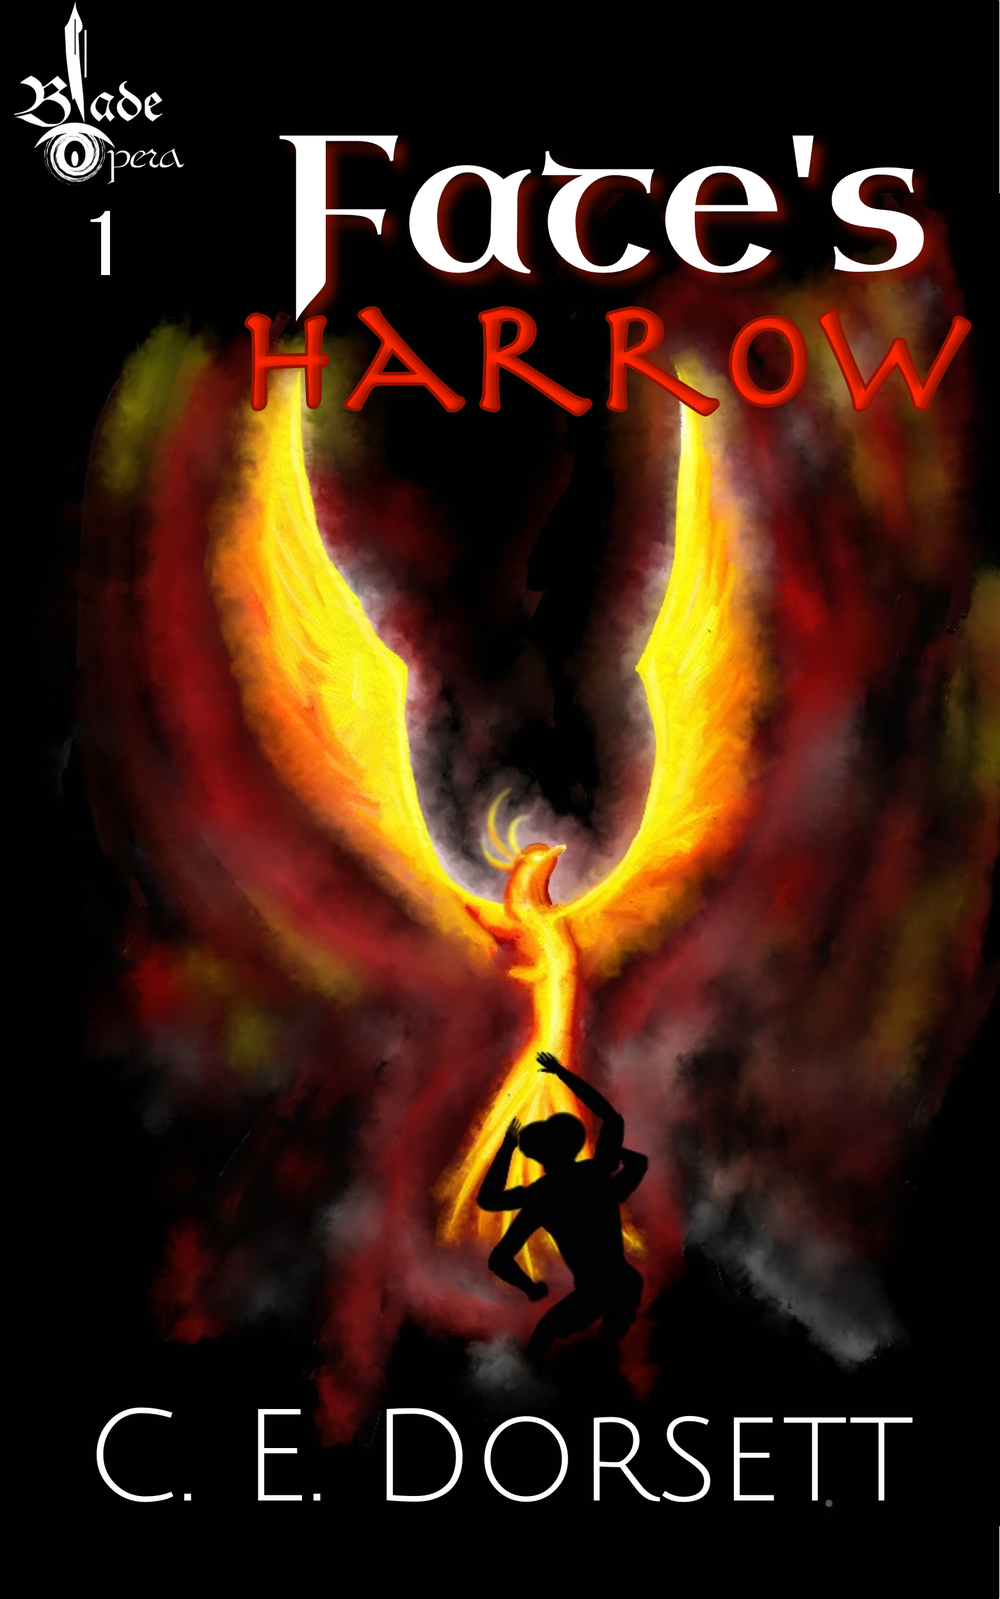 Fate's-Harrow-Cover-2.jpg